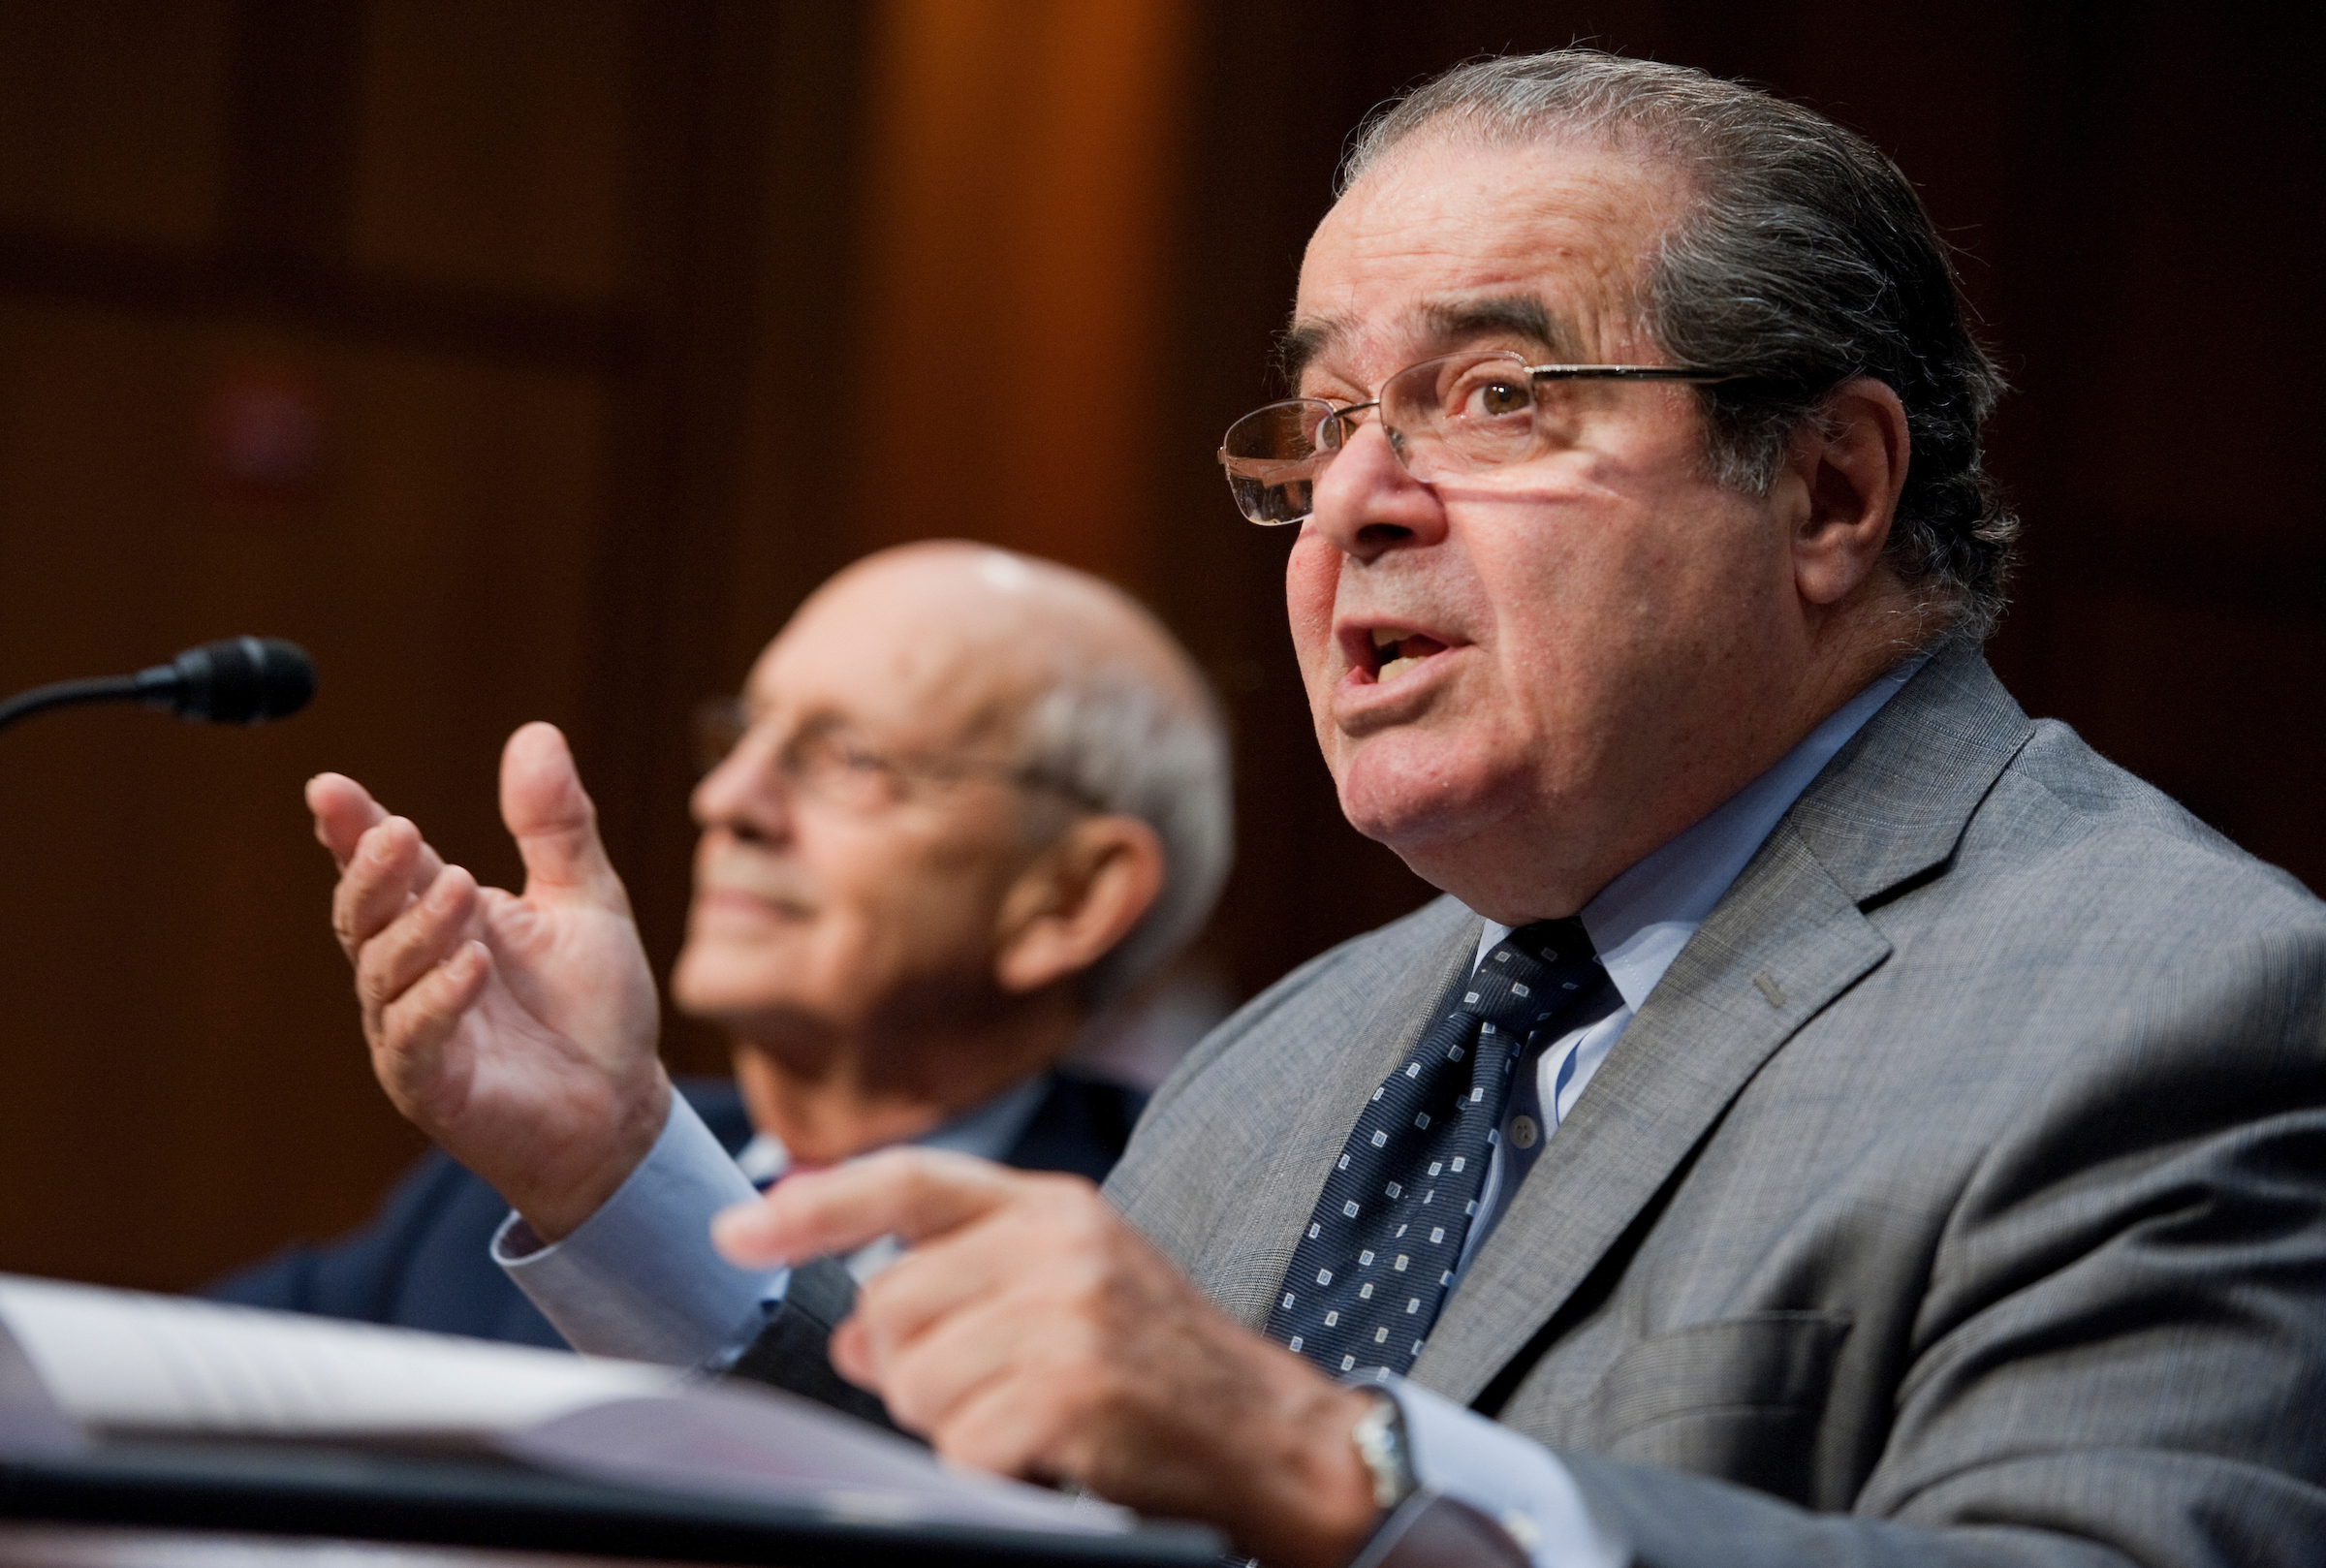 Supreme Court Justice Antonin Scalia testifies at a Senate Judiciary Committee hearing in October 2011. To his left is Justice Stephen G. Breyer. (Tom Williams/Roll Call file photo)